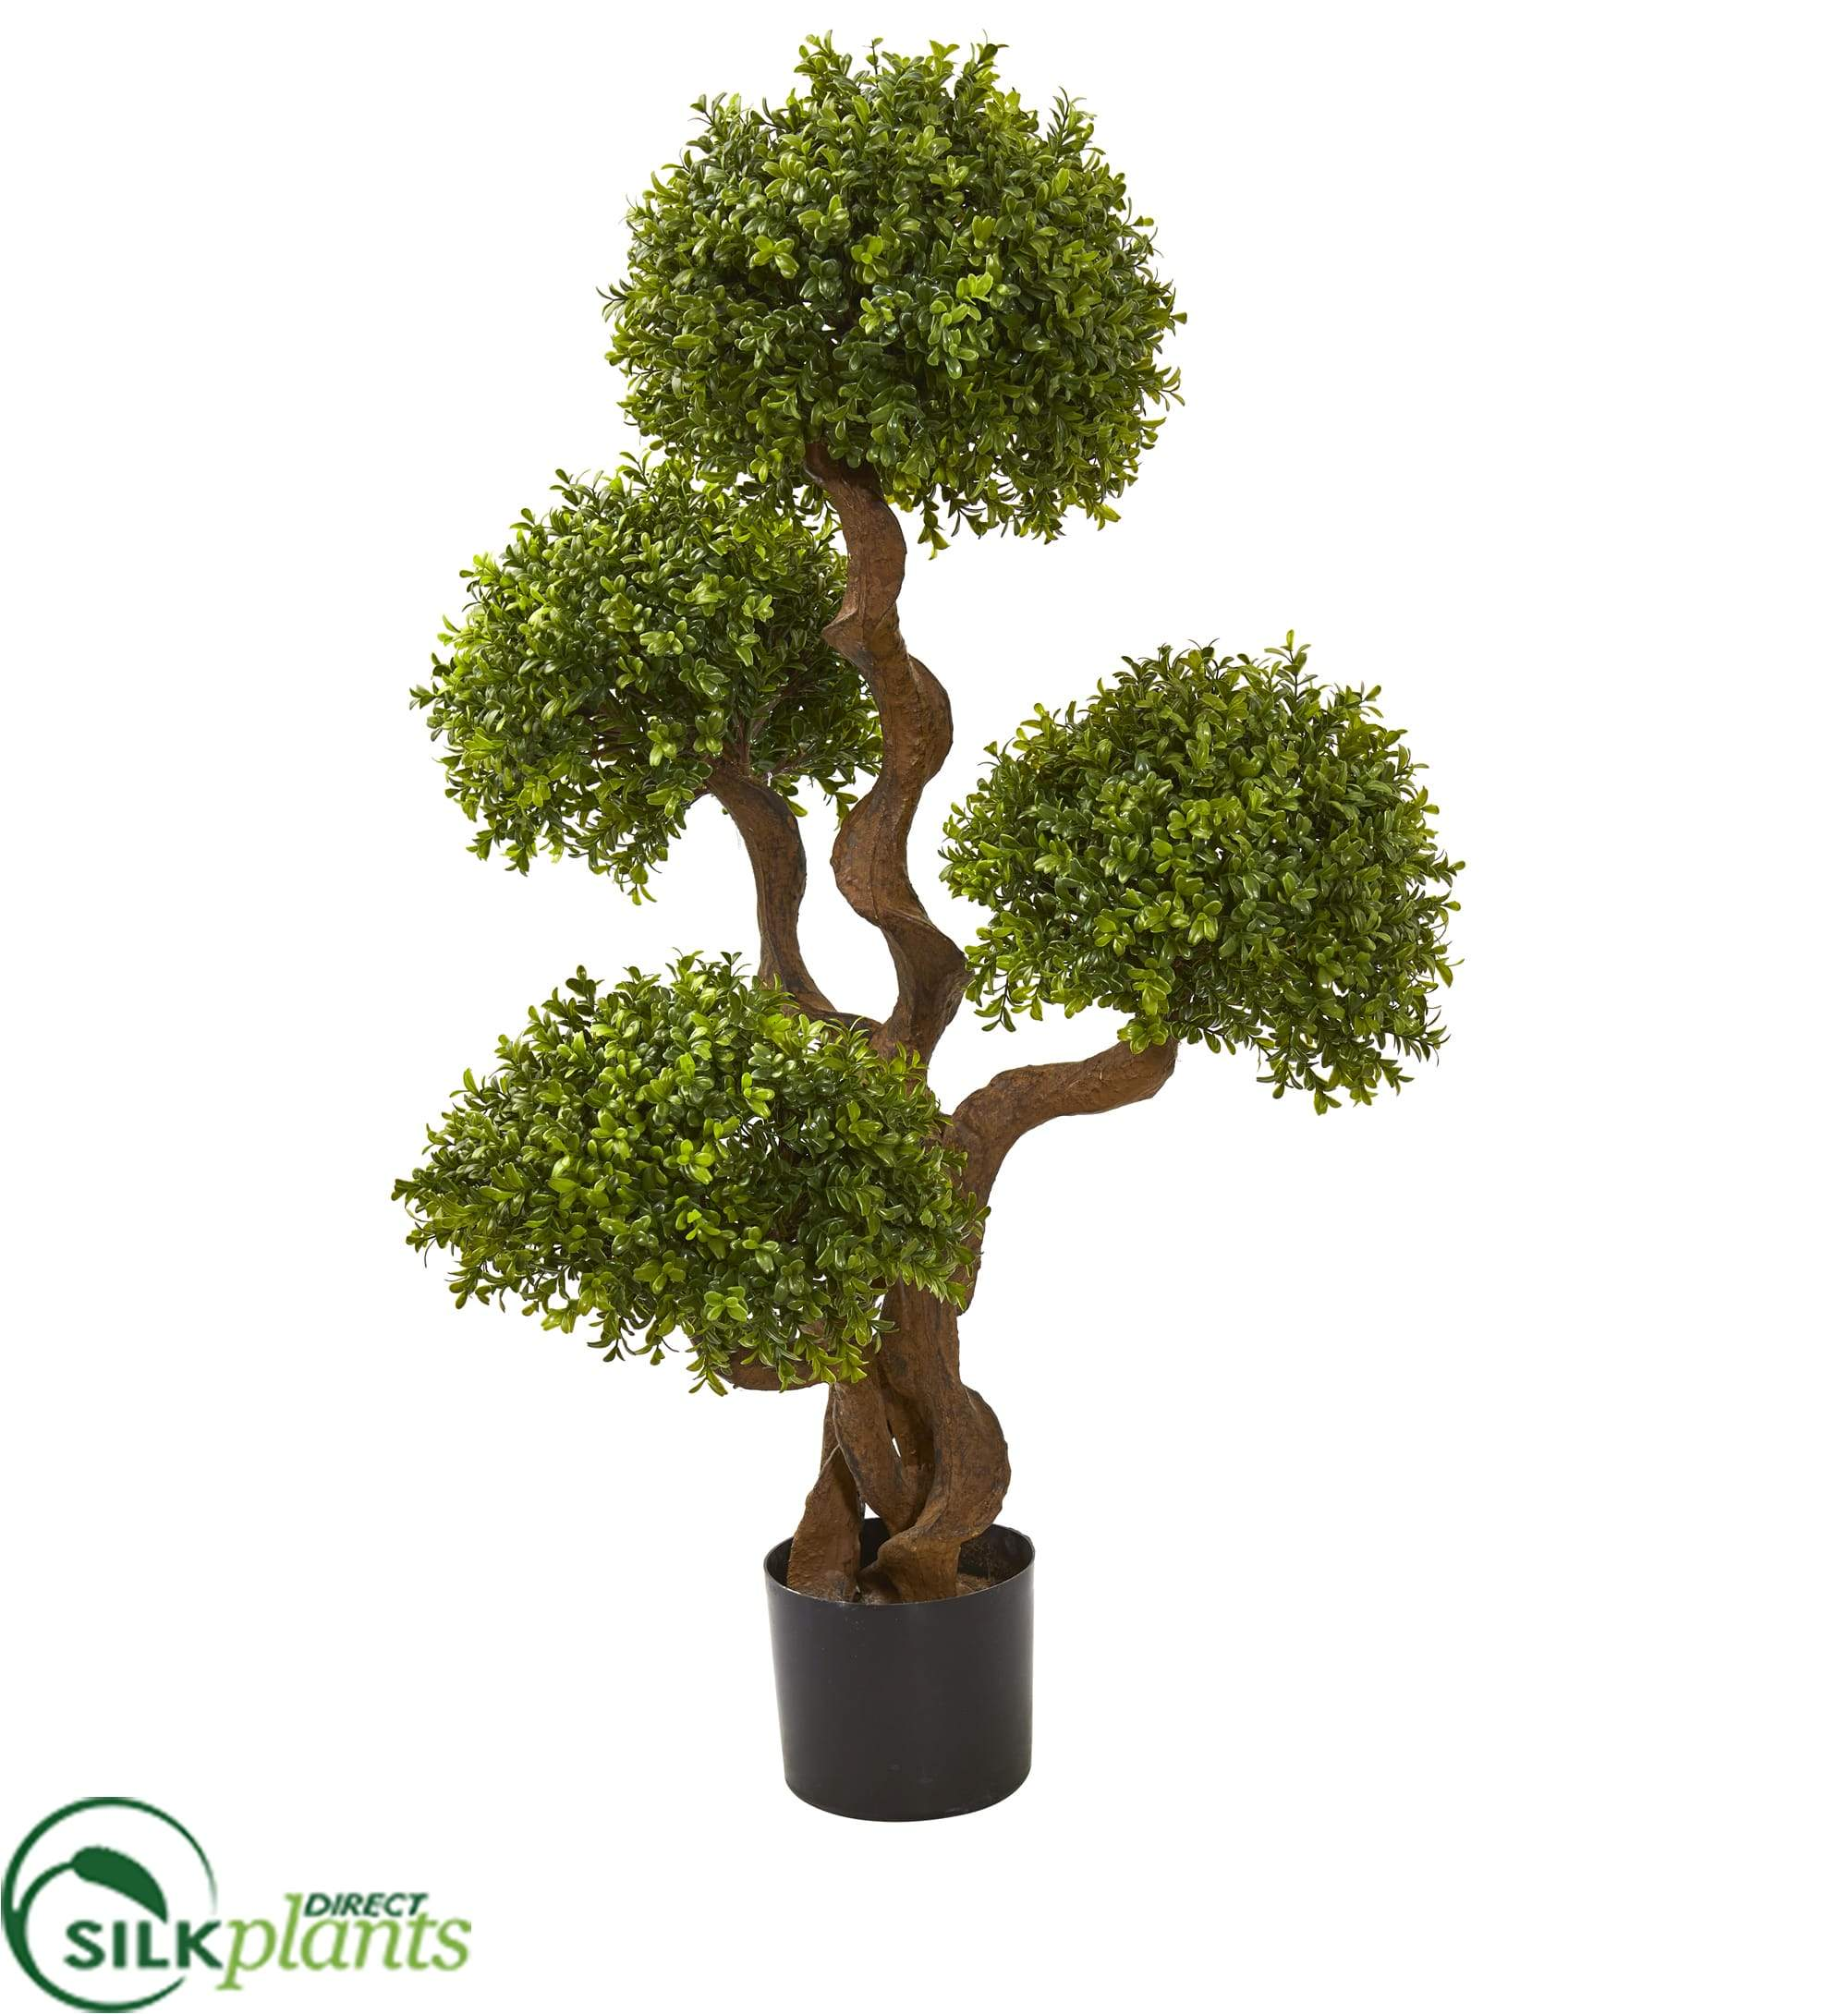 Silk Plants Direct Four Ball Boxwood Artificial Topiary Tree Pack Of